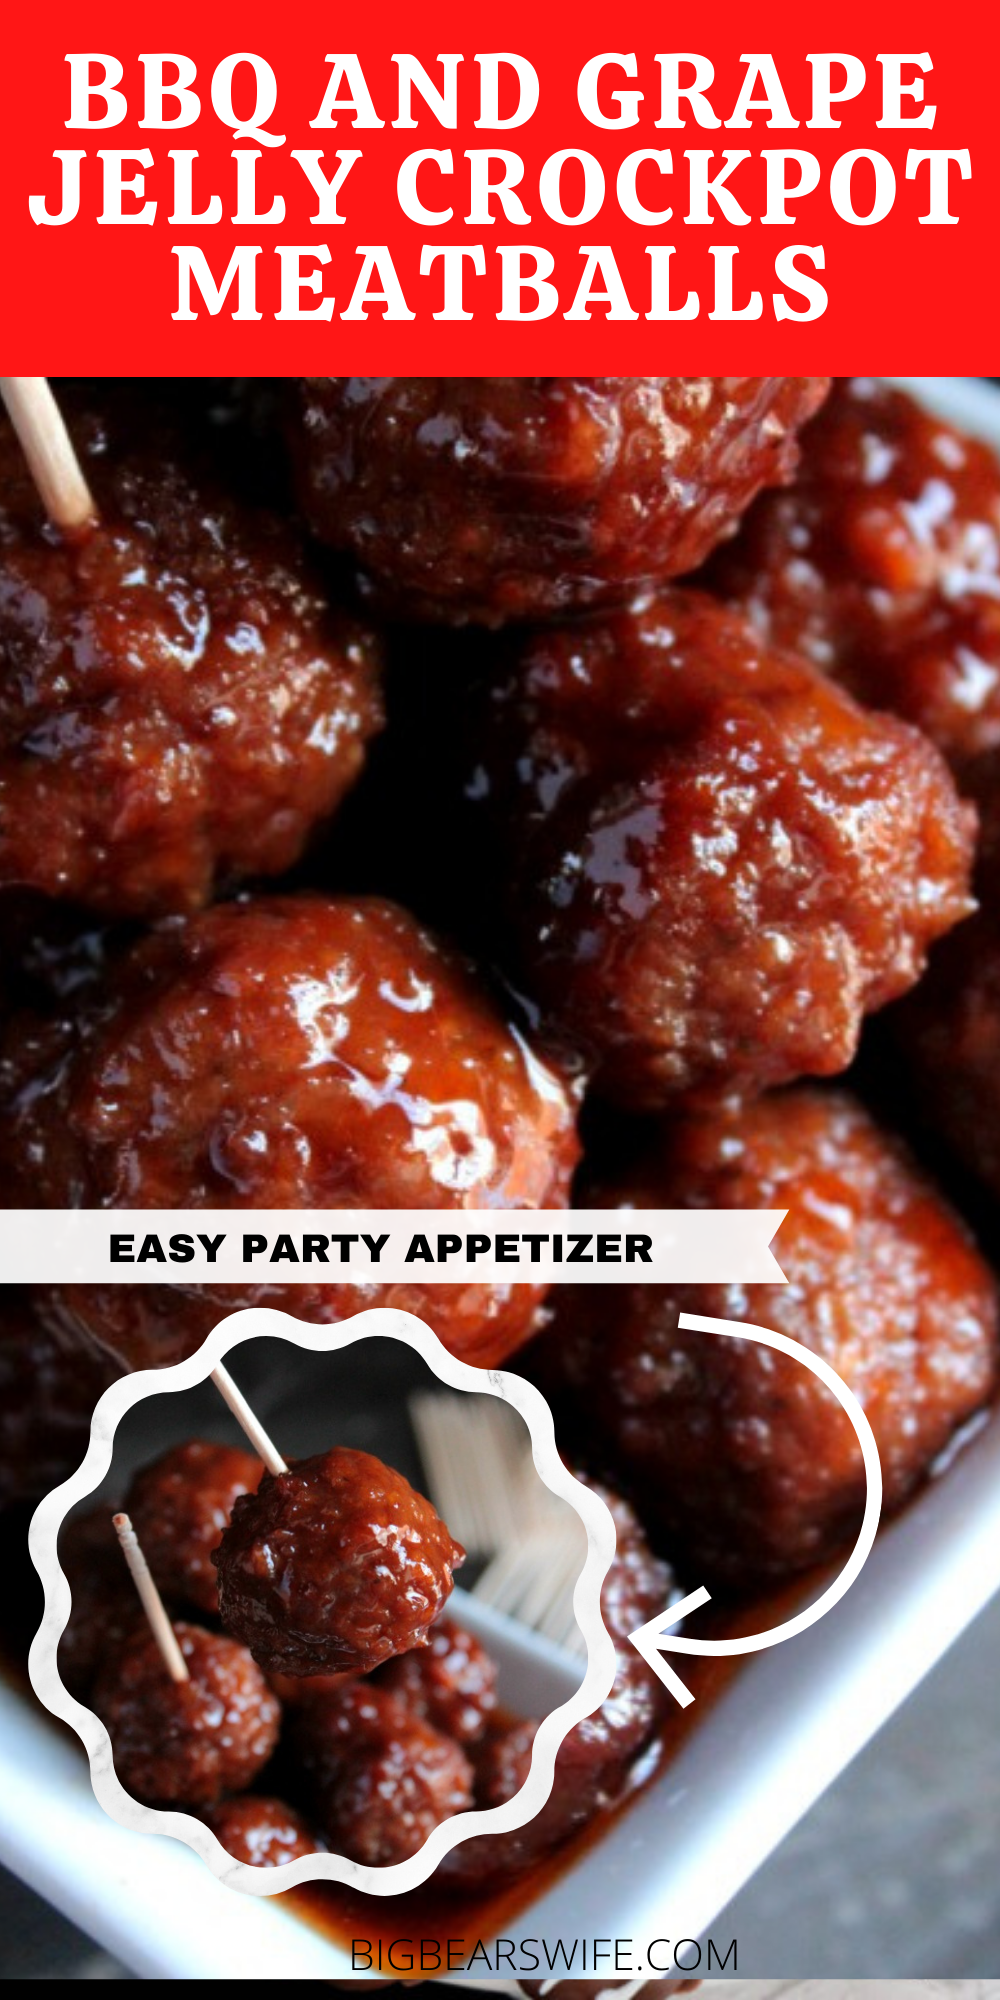 BBQ and Grape Jelly Crockpot Meatballs - a Holiday classic that we love to make each year! Meatballs slow cooked in grape jelly and BBQ sauce! - These super popular BBQ and Grape Jelly Crockpot Meatballs are always a hit at Thanksgiving at Christmas! They're super easy to make and everyone always loves them! I had no idea how easy they were until my mom showed me how to make them! via @bigbearswife